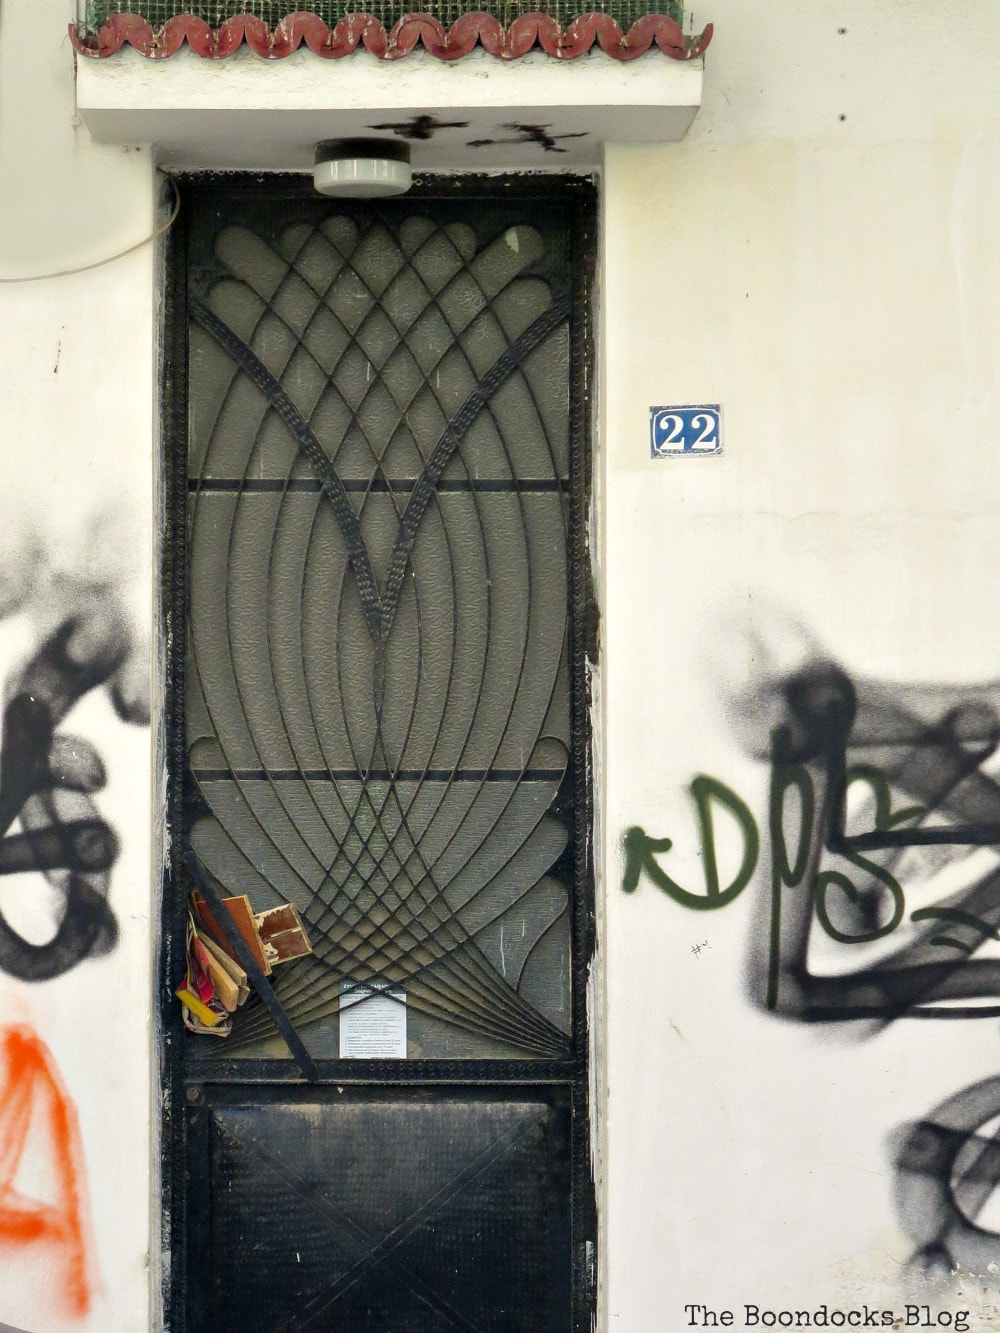 black metal door with intertwining meal arches on upper part and graffiti, Celebrating a 3 year Blogoversary with Lots of Doors www.theboondocksblog.com